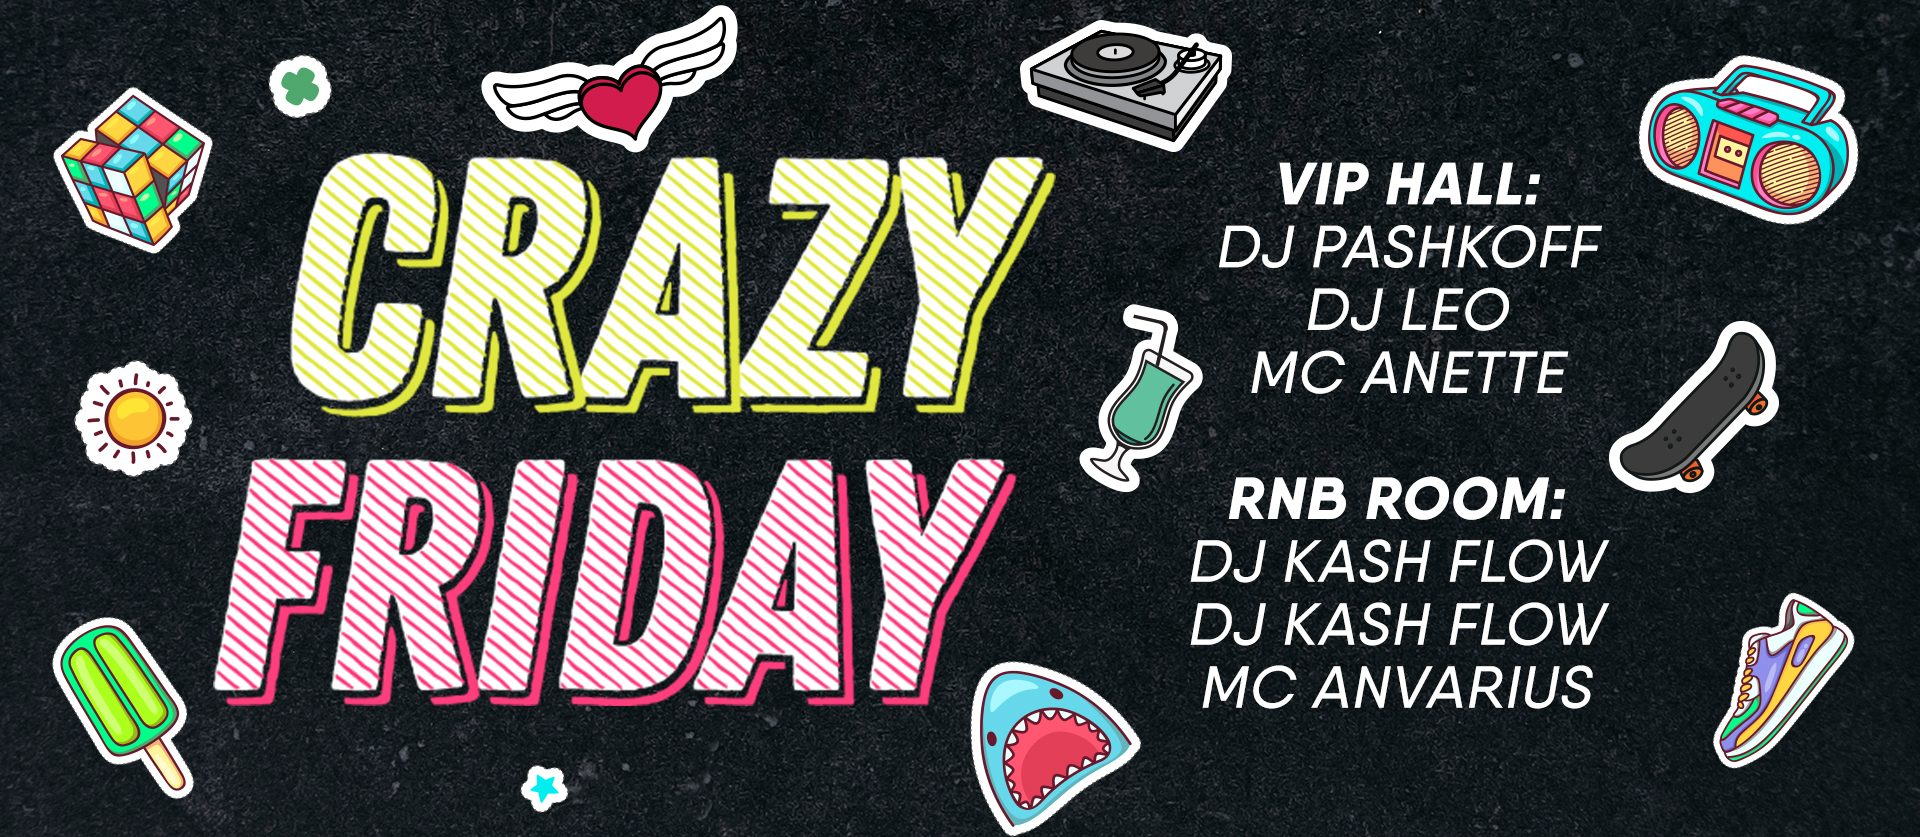 Crazy Friday. Dj Pashkoff, Dj Leo, Mc Anette